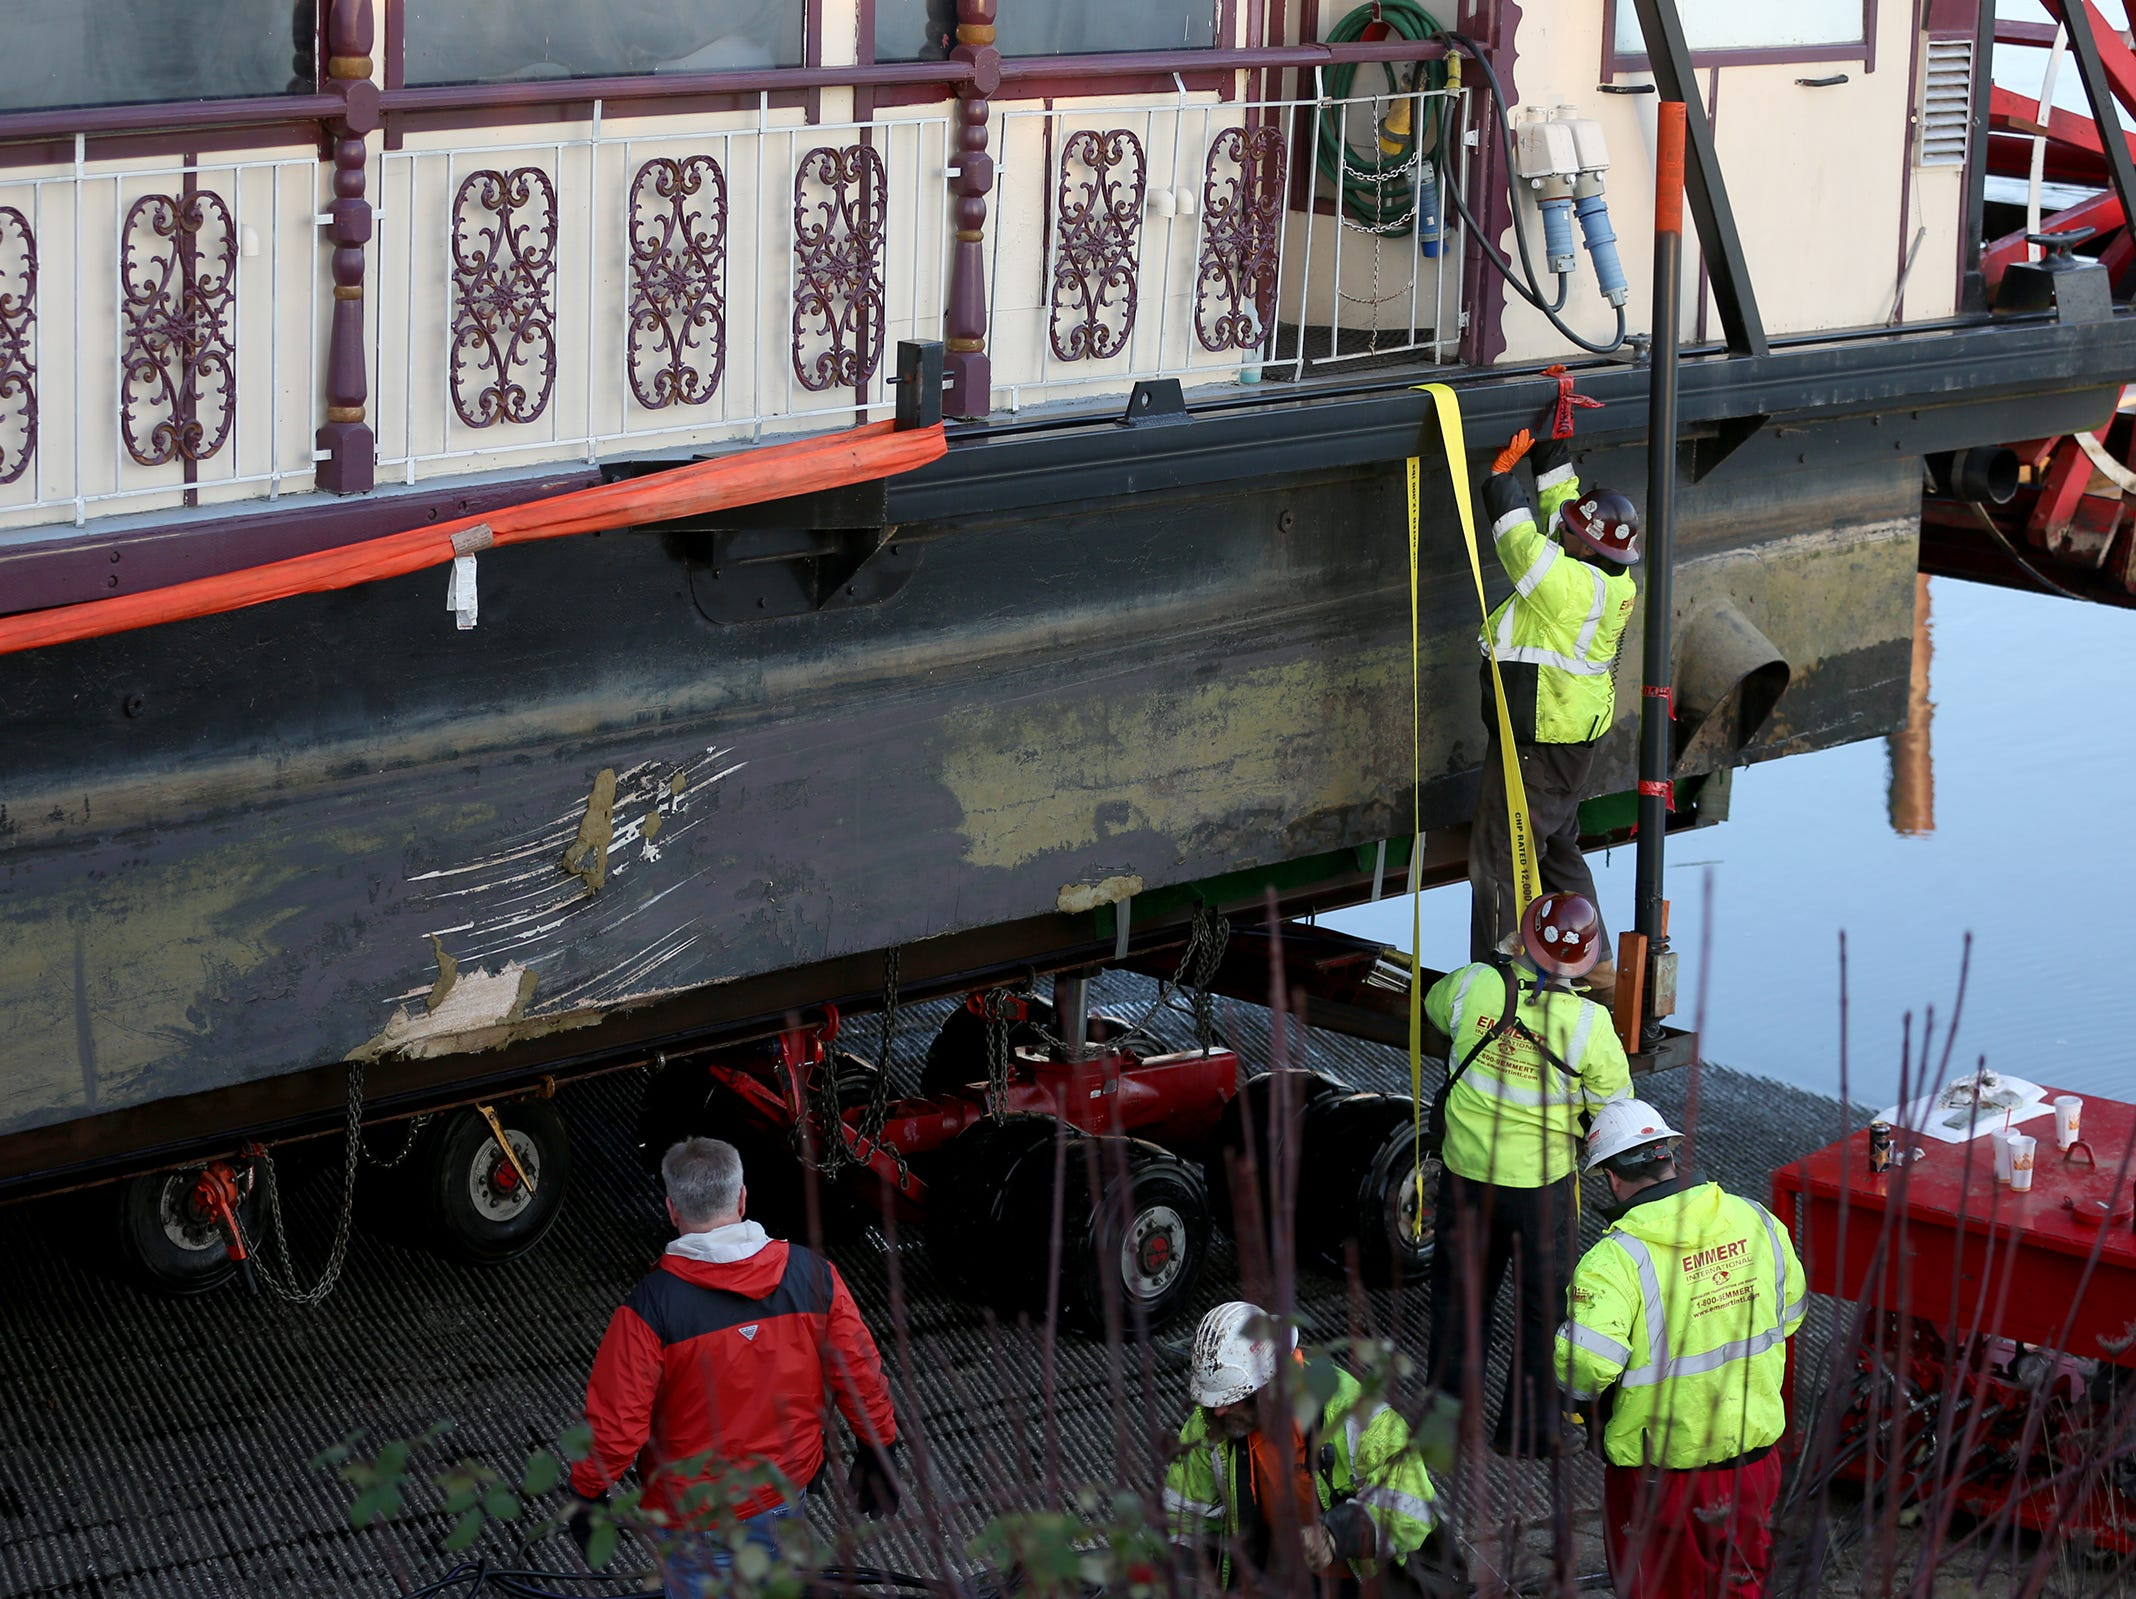 The Willamette Queen was brought ashore  for fiberglass repairs in Salem on Wednesday, Feb. 6, 2019. Damage is shown on the boat.